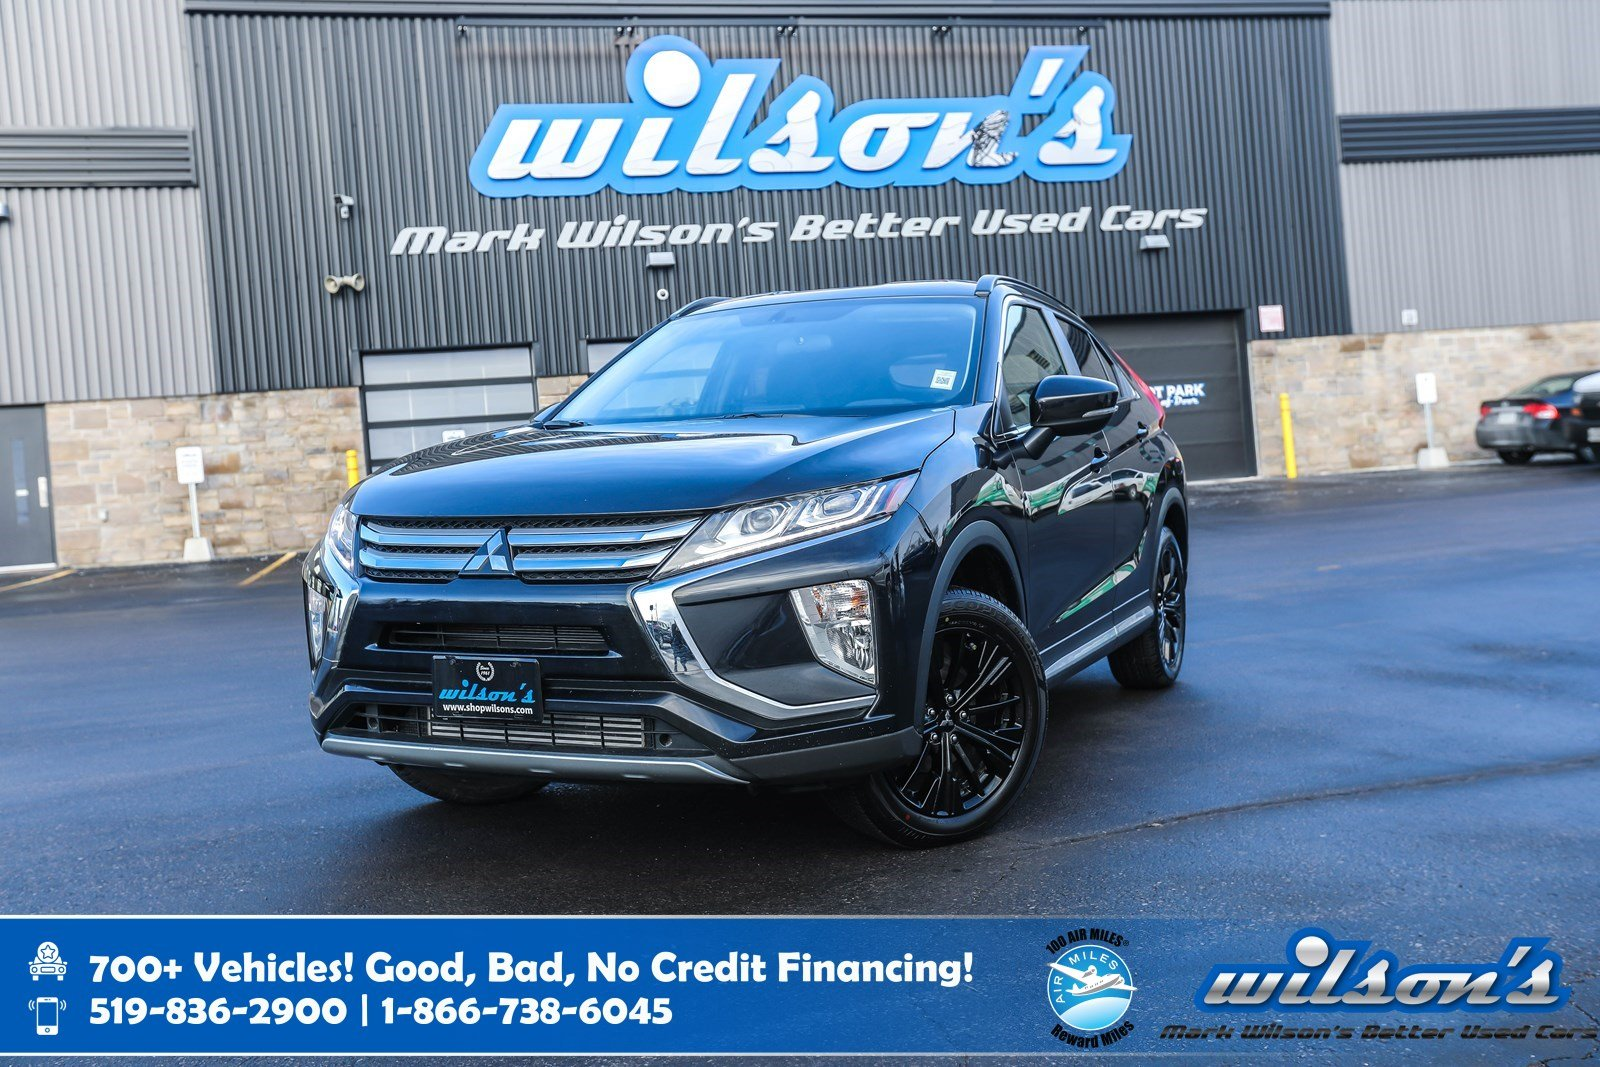 Certified Pre-Owned 2019 Mitsubishi Eclipse Cross SE Black Edition AWD, Heated Steering, Heated Front + Rear Seats, Blindspot Warning and more!